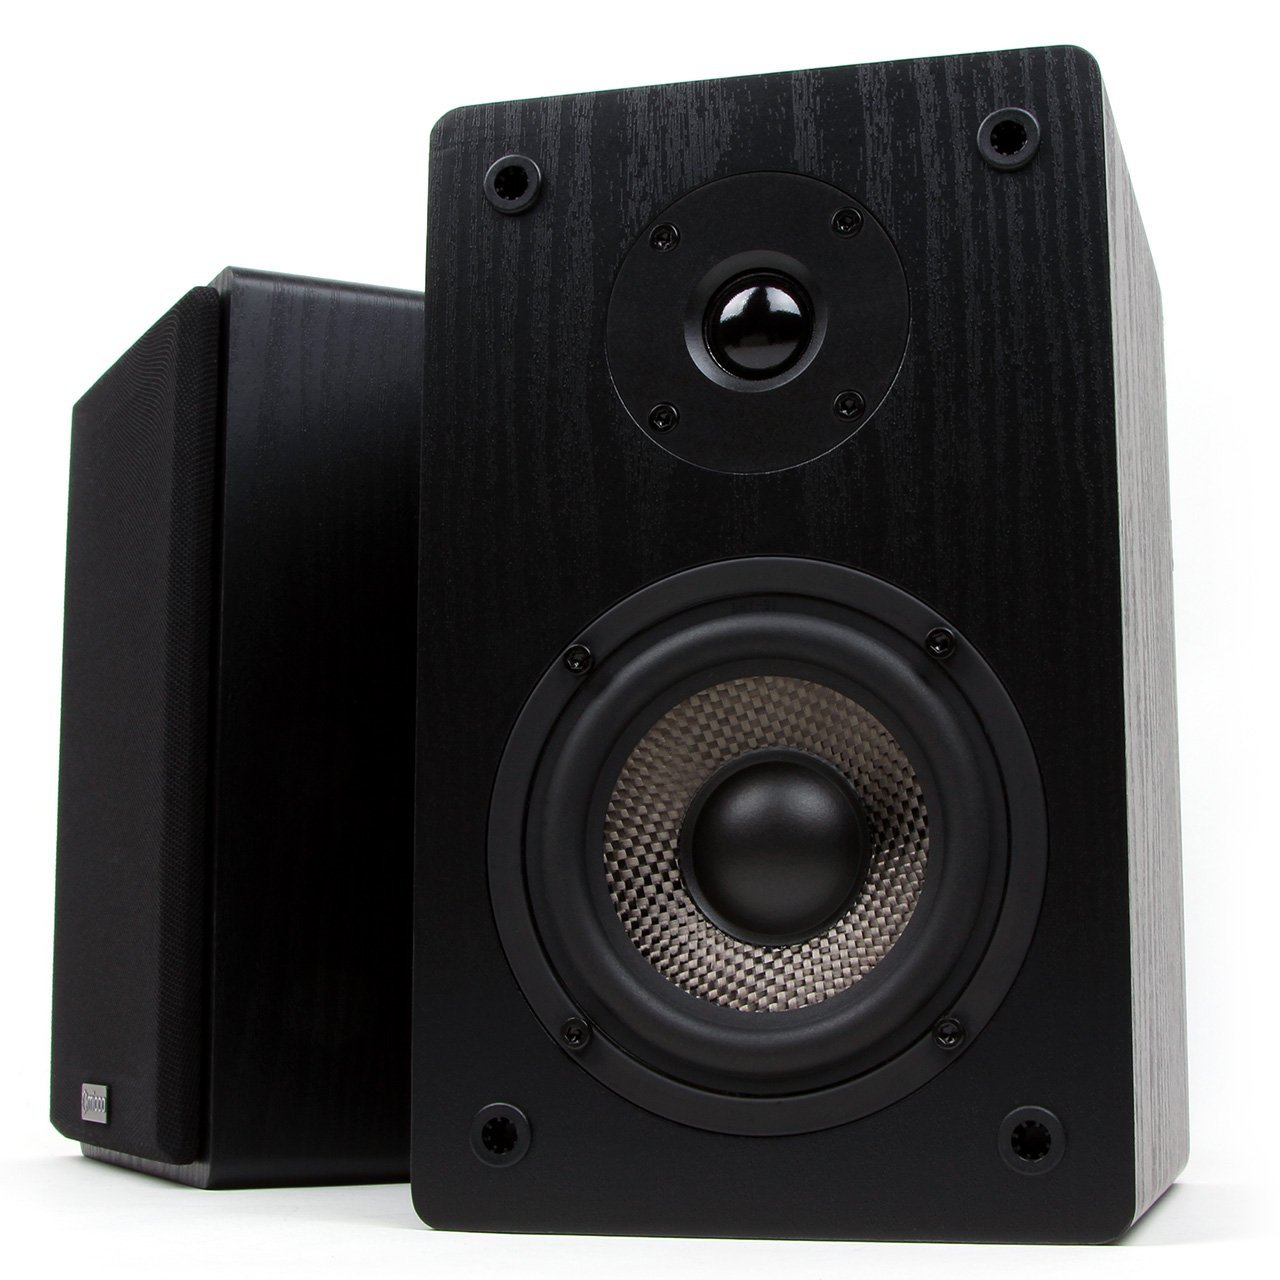 Micca MB42 Bookshelf Speakers Passive Needs Amplifier Or Receiver Not For Use Directly